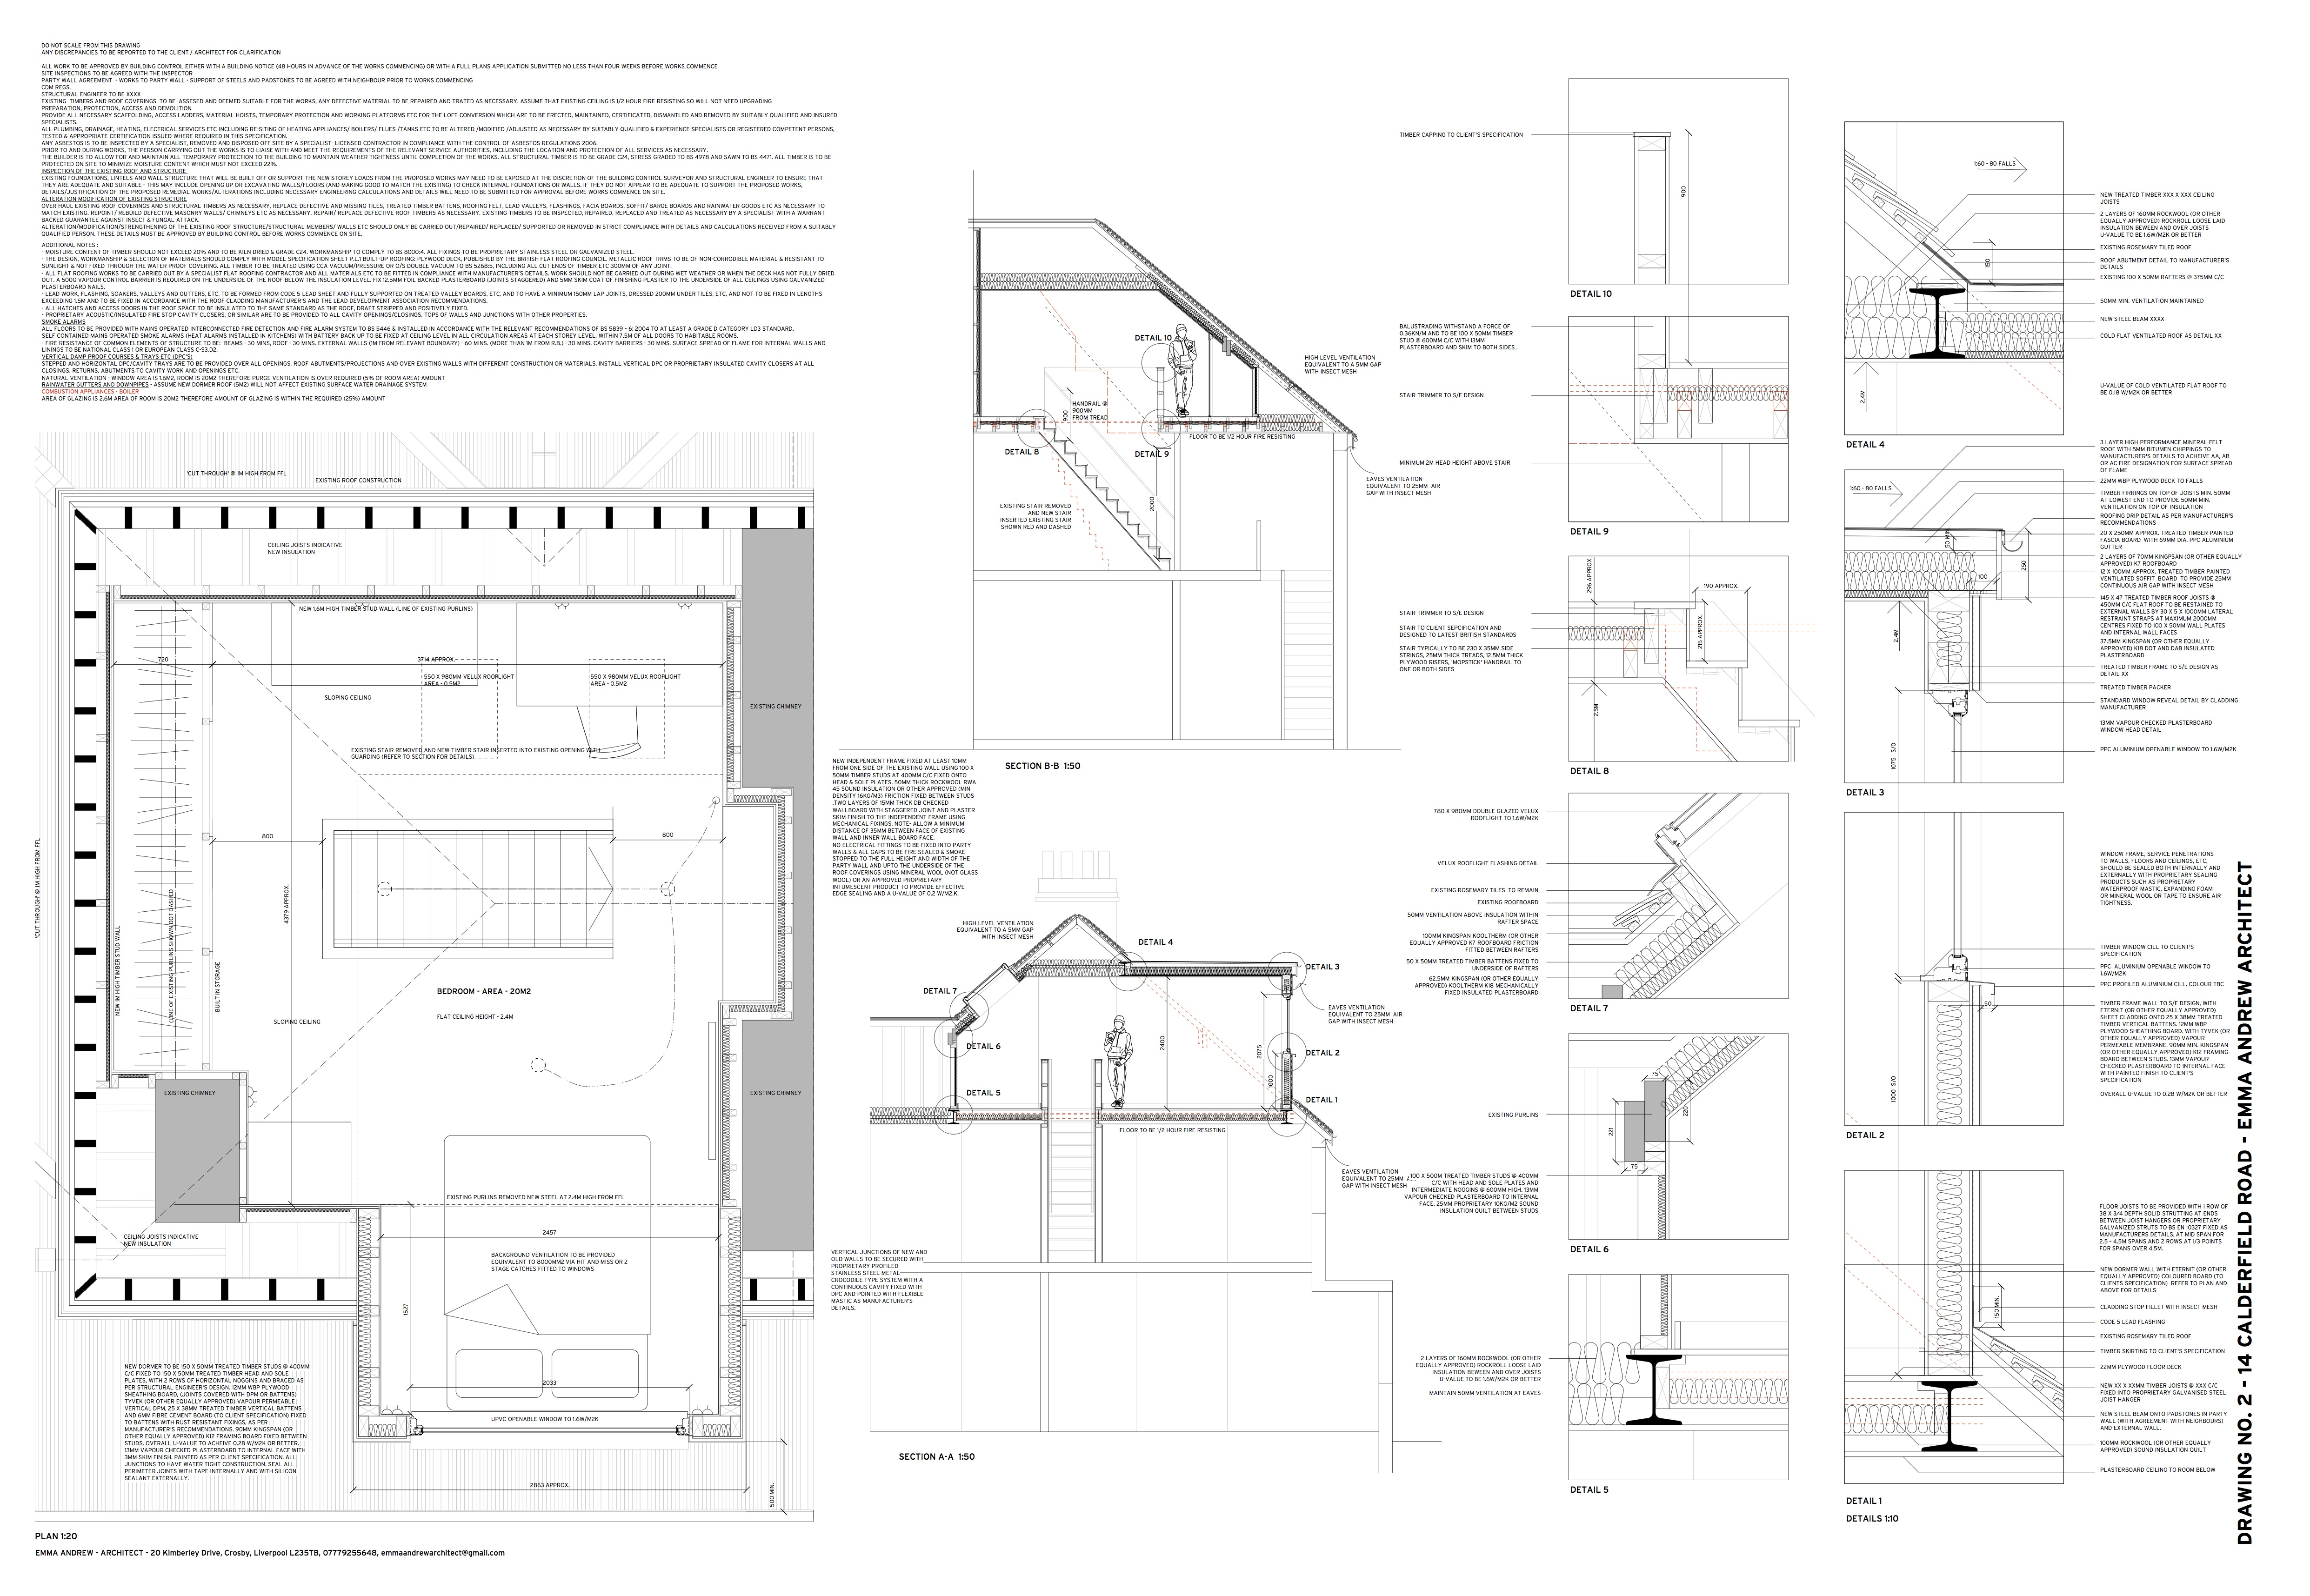 141.02 Plan Sections and Details